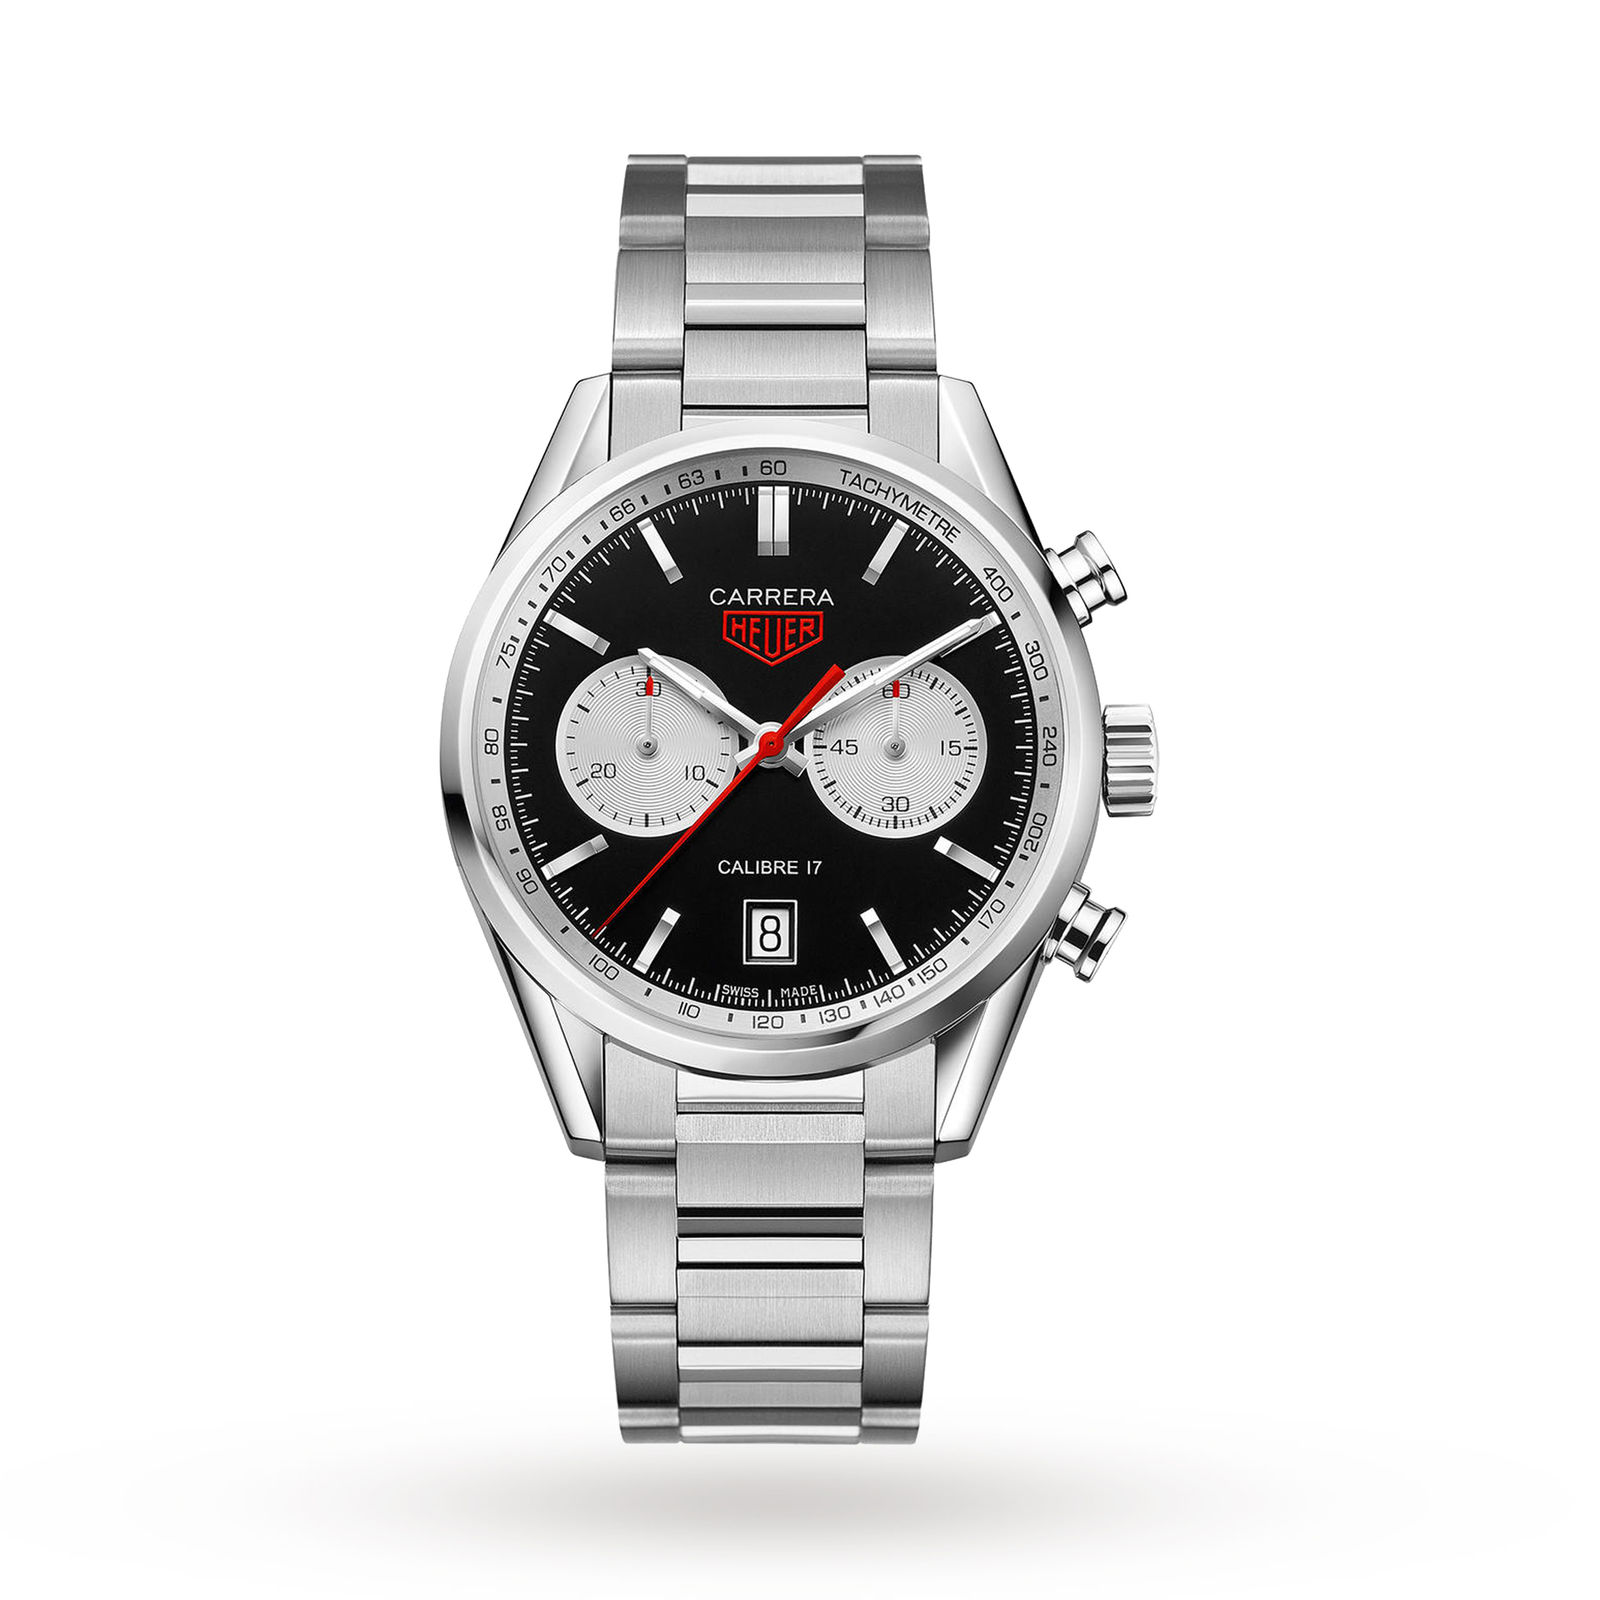 watch carrera day date tag chronograph heuer youtube watches